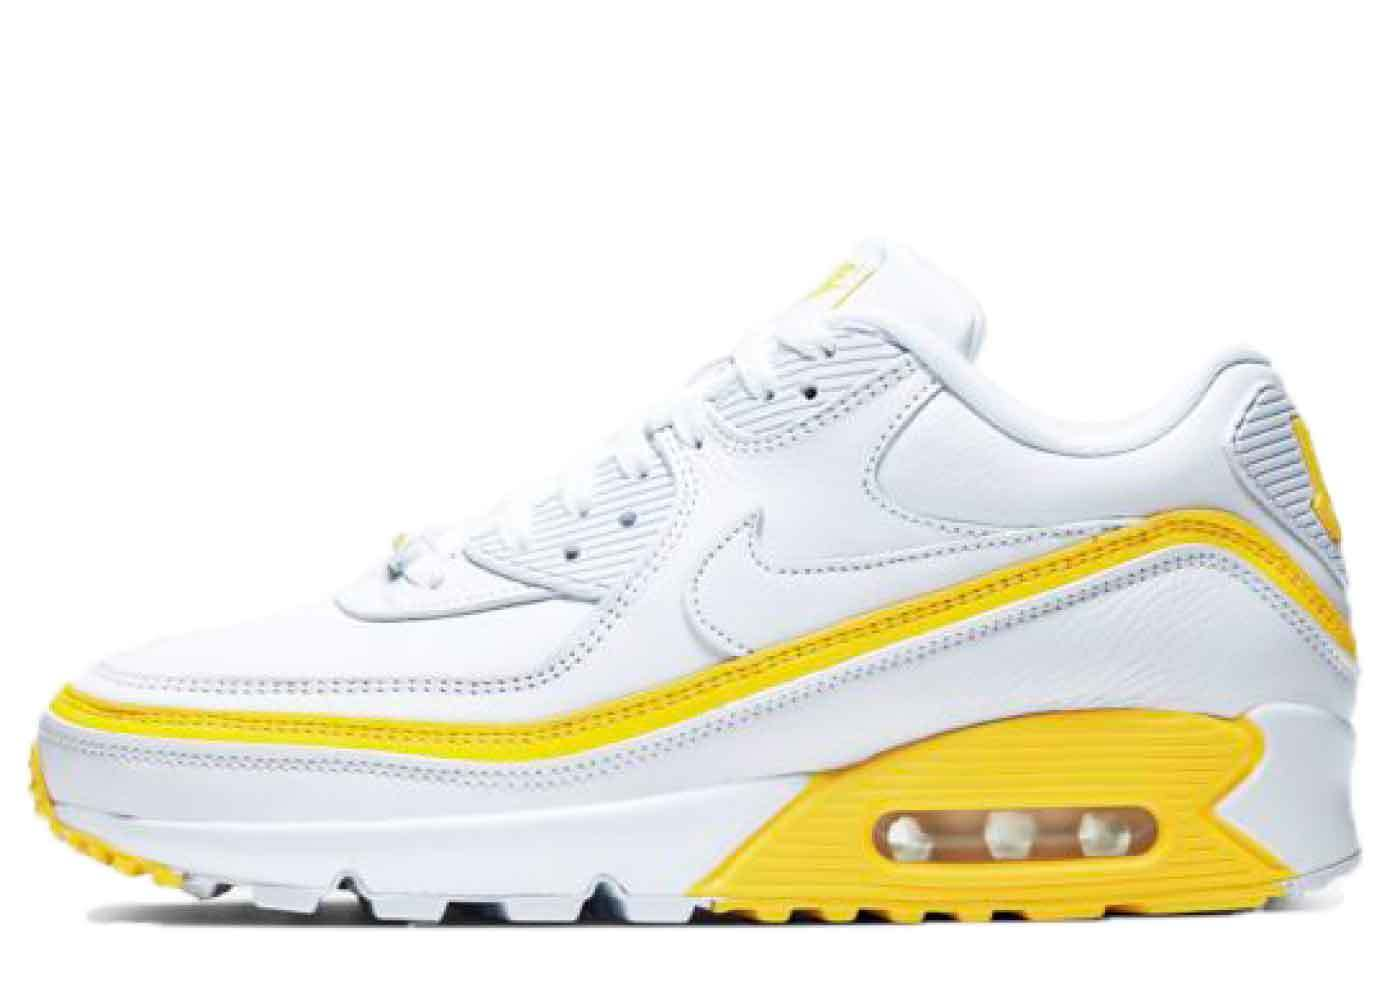 Nike Air Max 90 Undefeated White Optic Yellowの写真